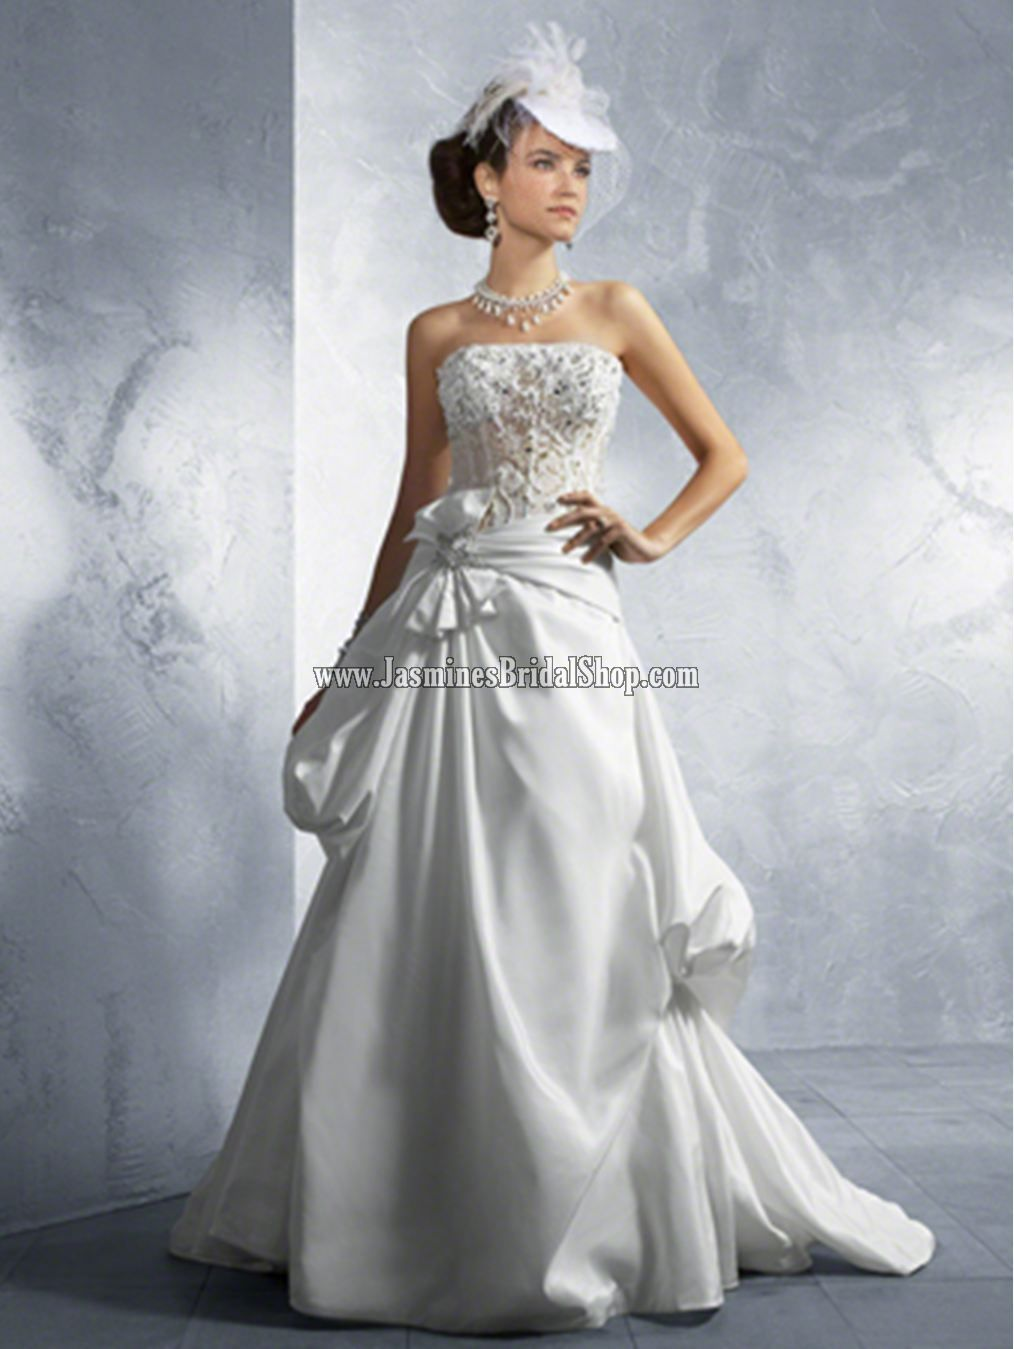 bridal gown designer bridal inspirations alfred a